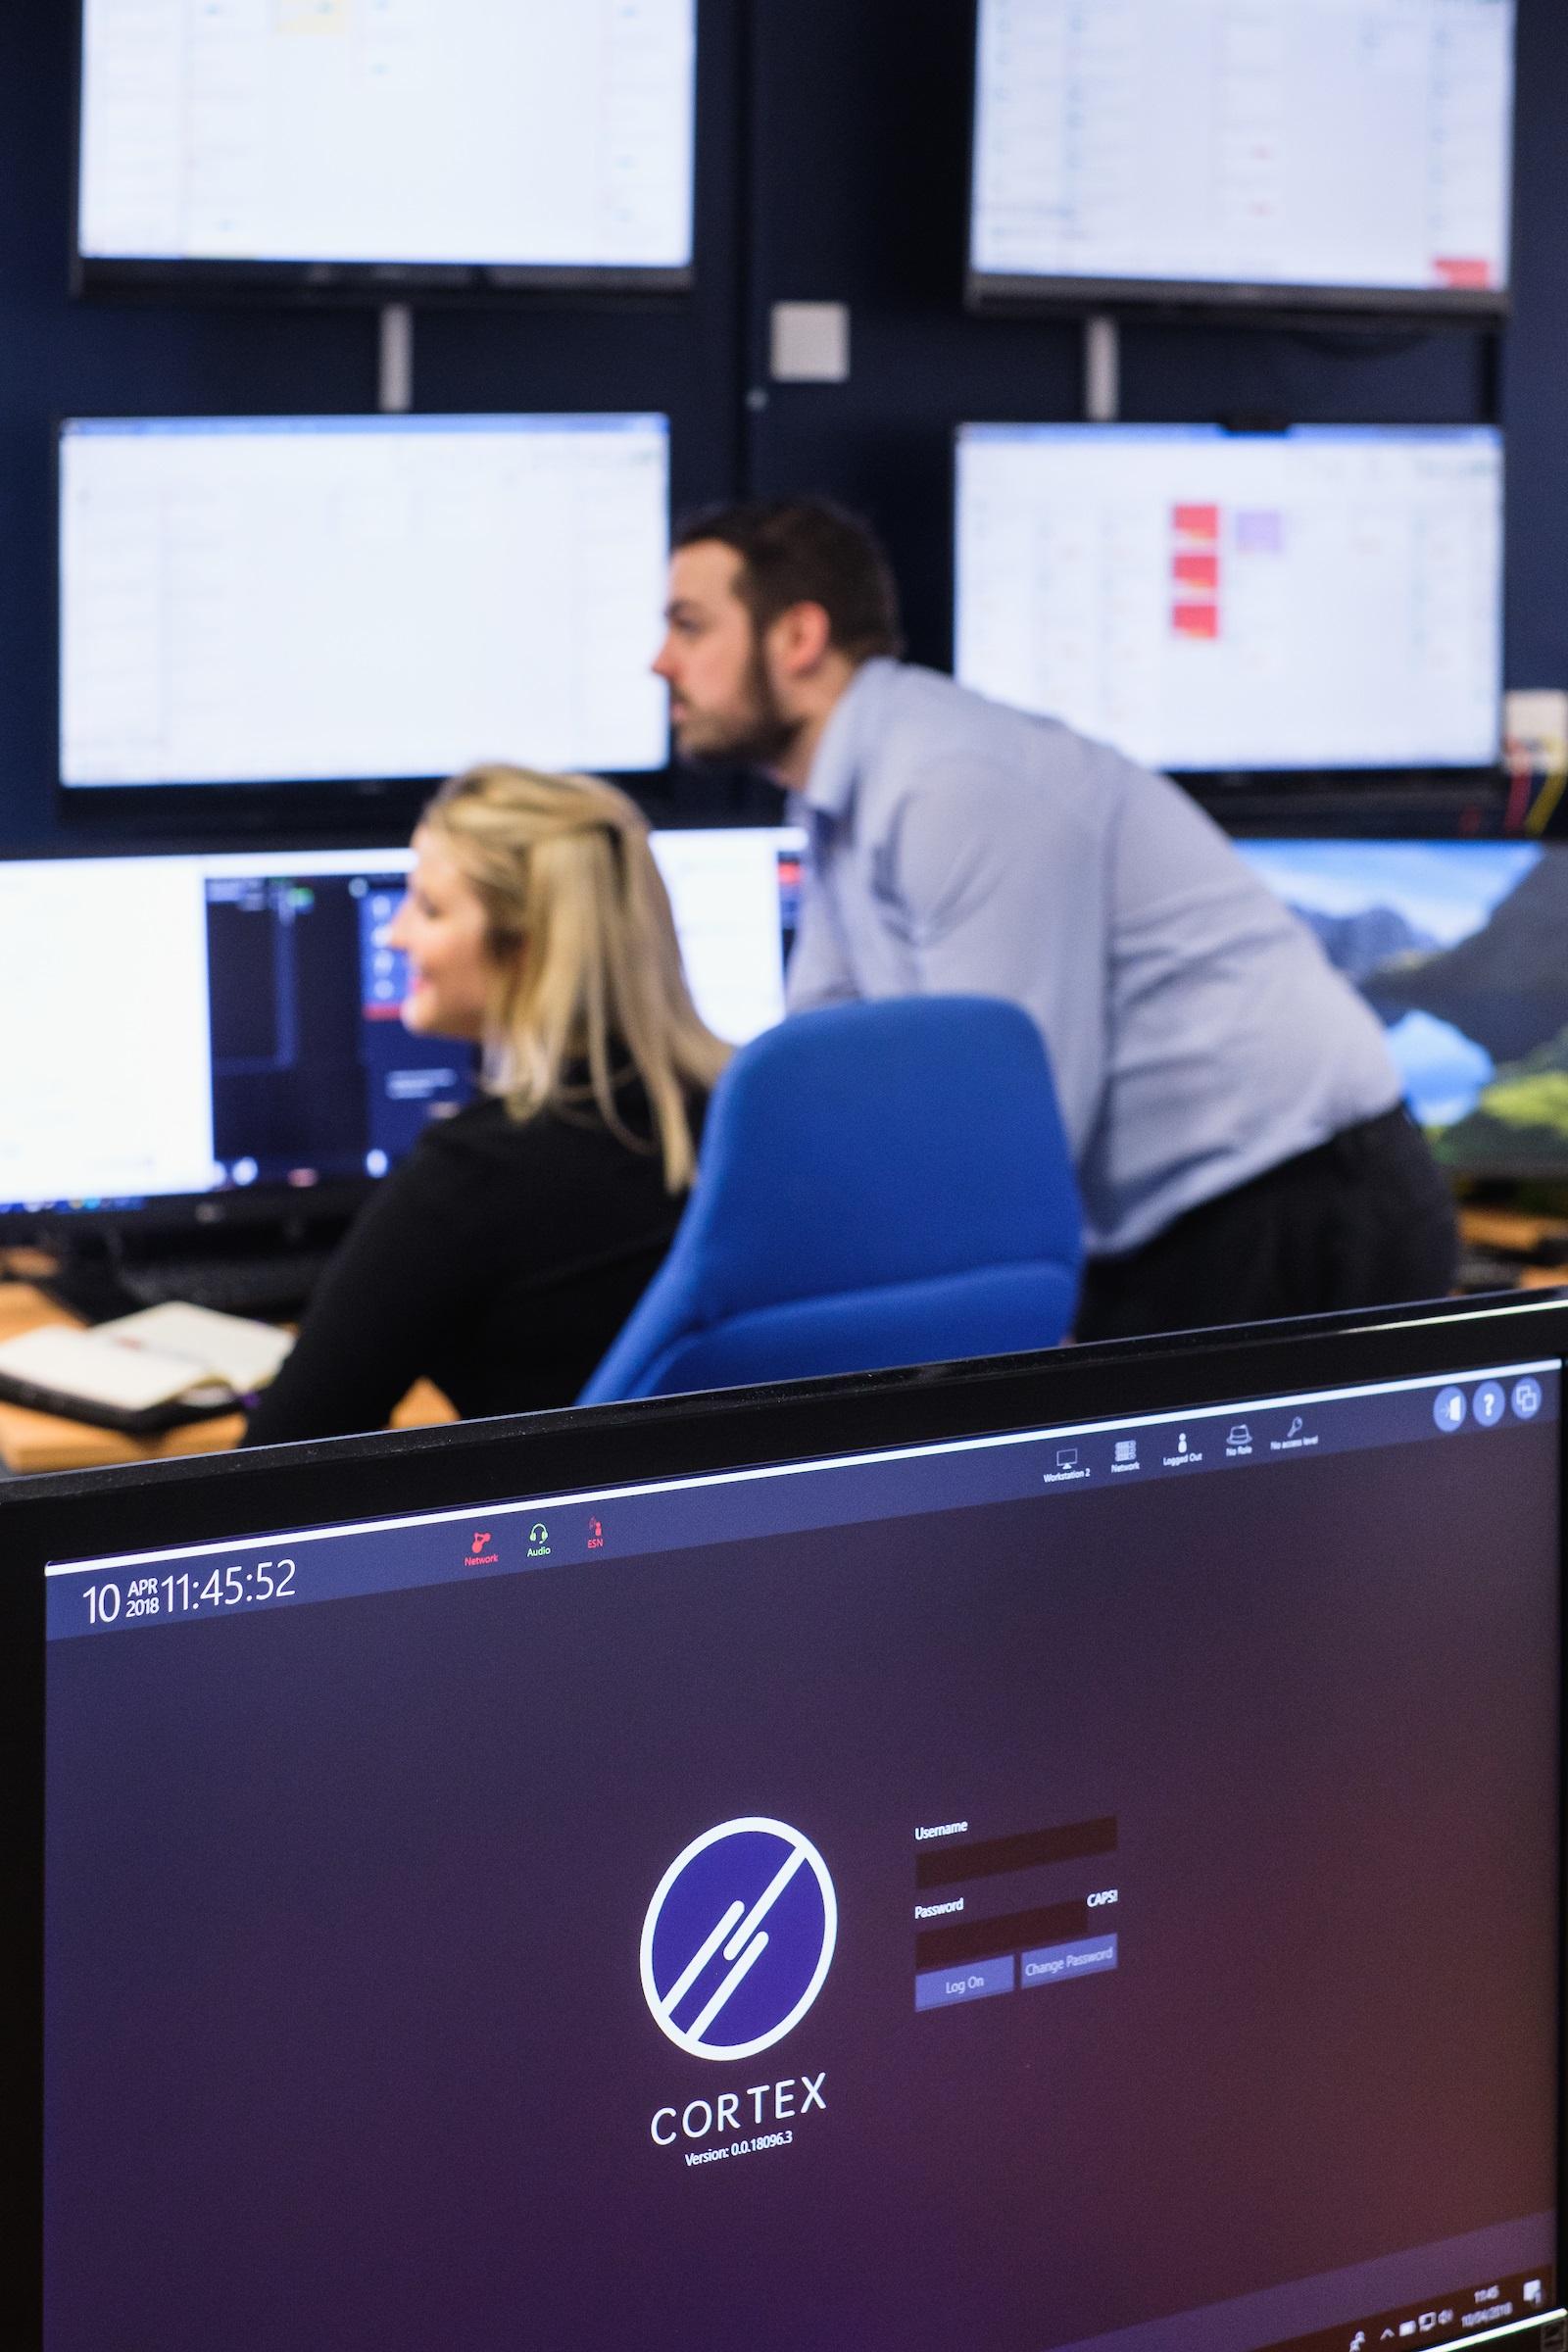 Cortex is APD's Integrated Communication Control System (ICSS) which is used by front line responders in more than 70 control rooms around the world.